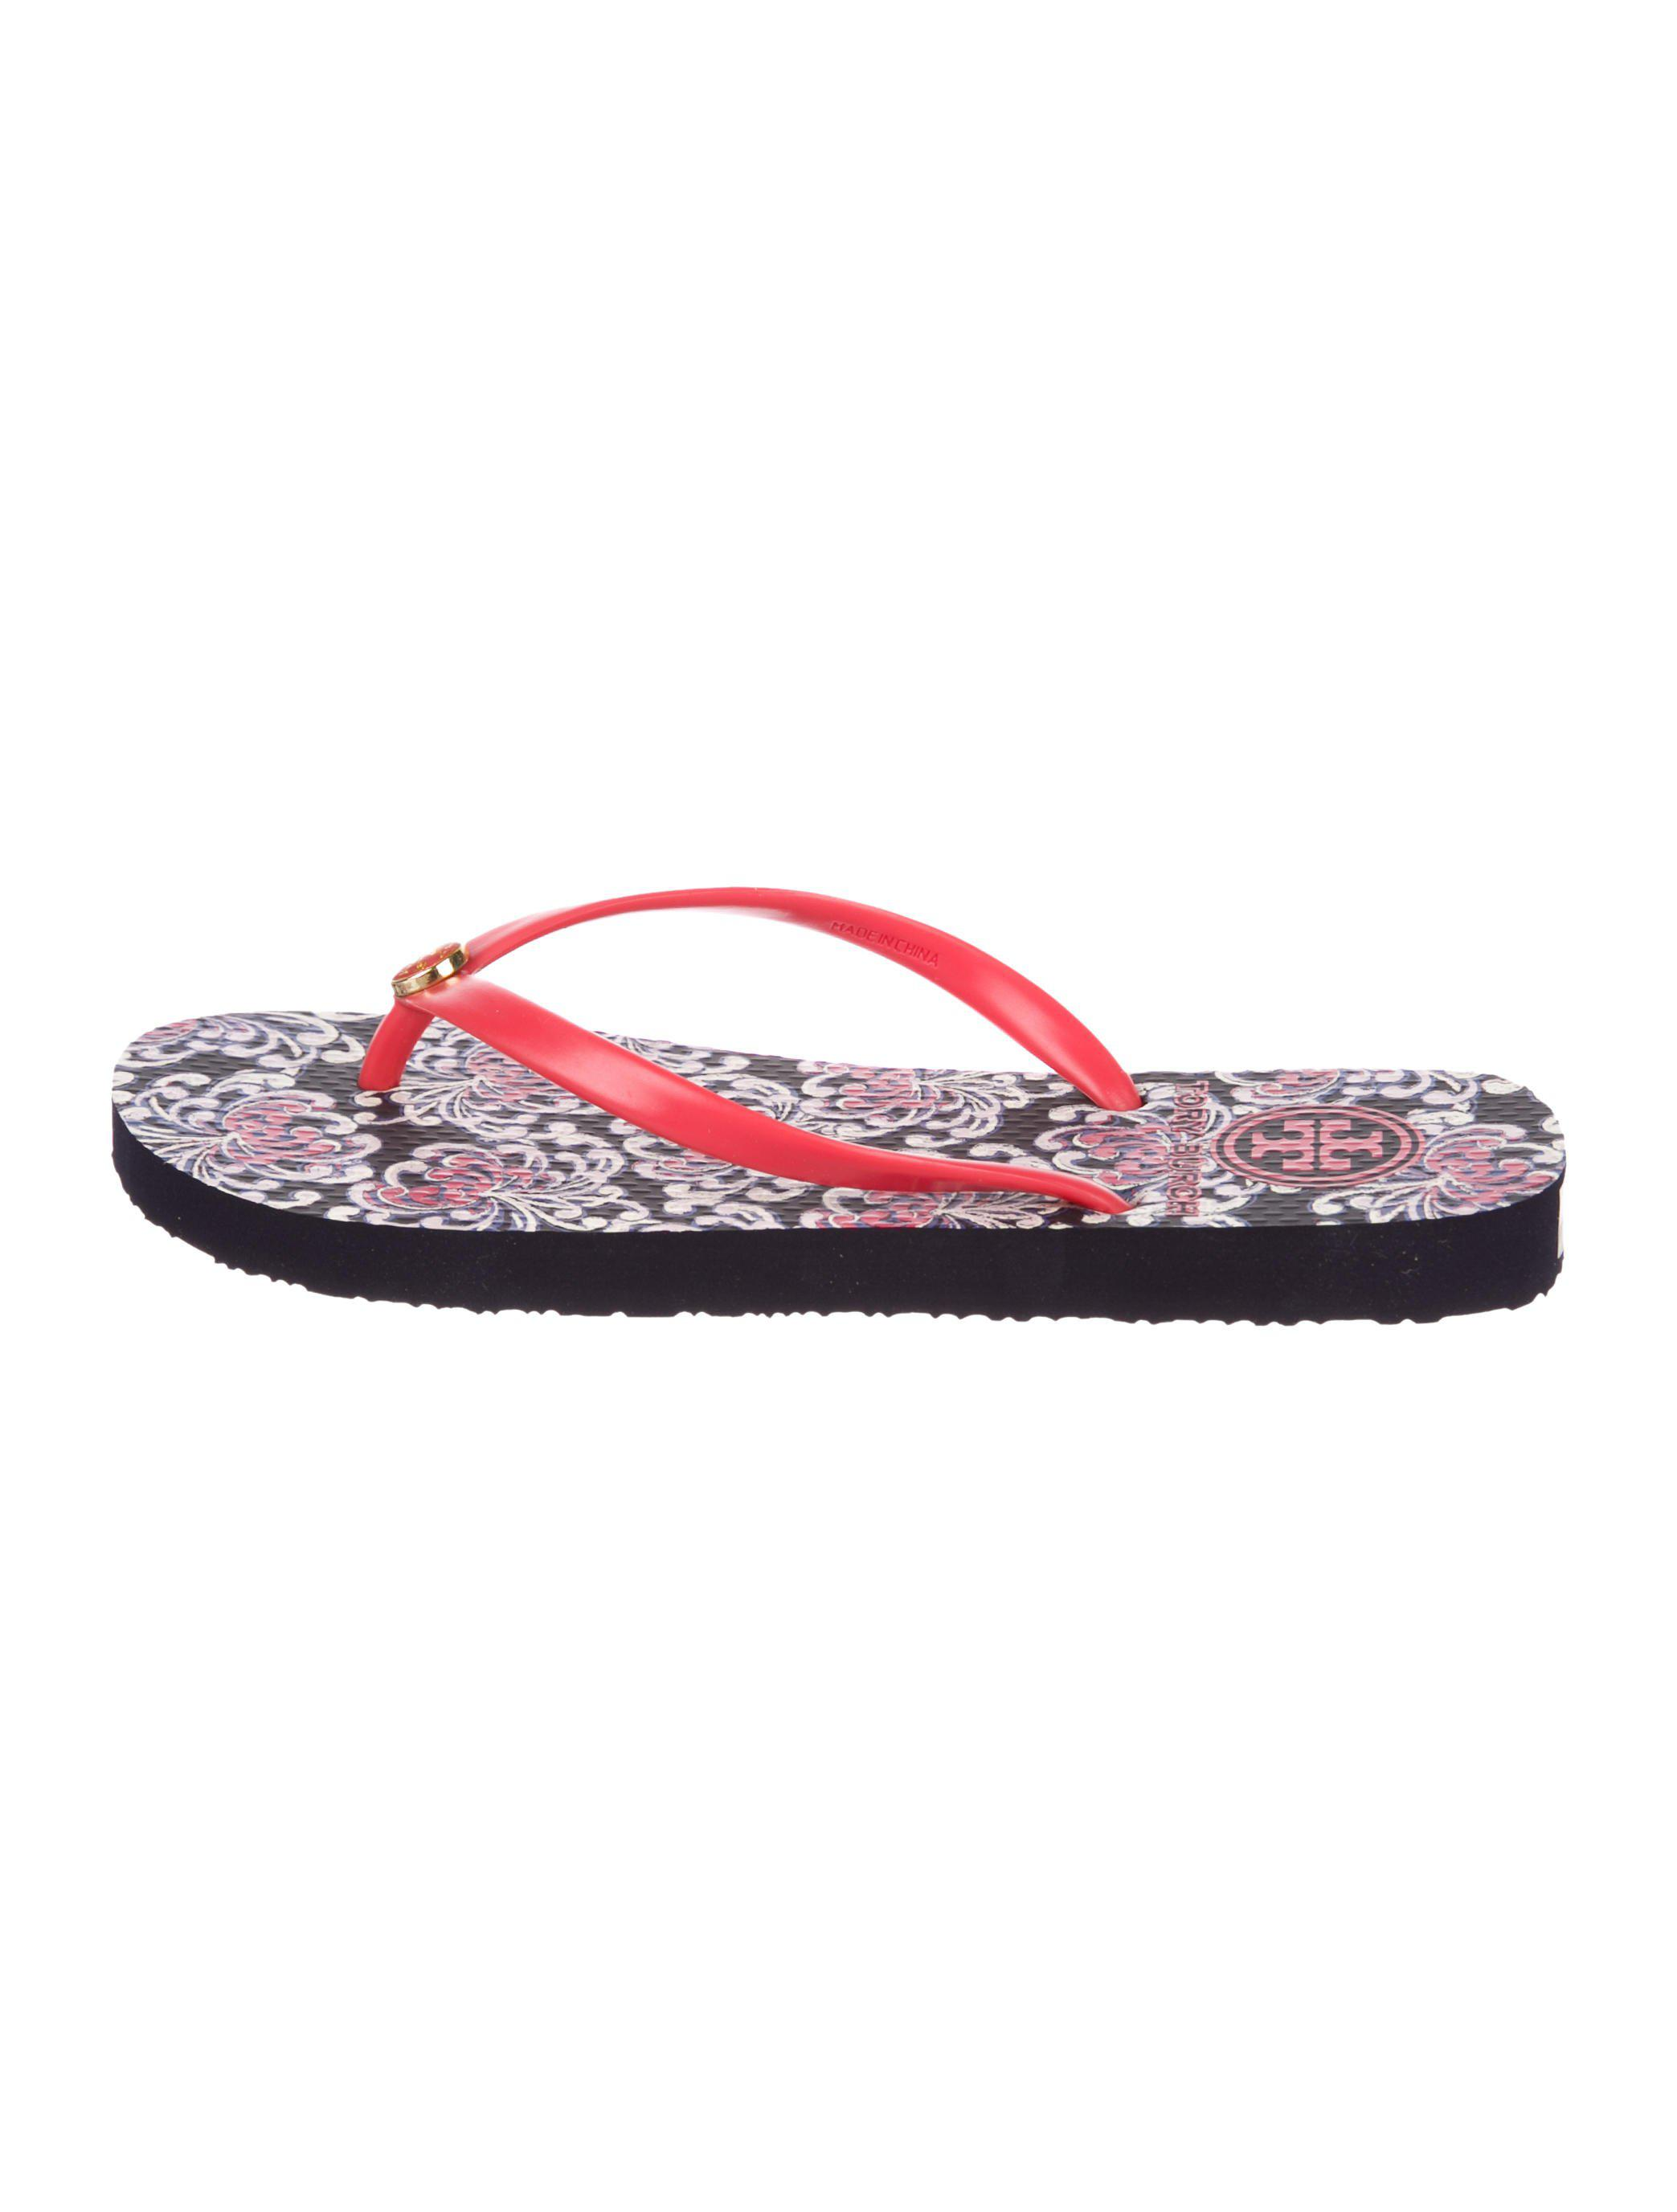 b449492c7d2 Lyst - Tory Burch Logo Thong Sandals W  Tags in Red